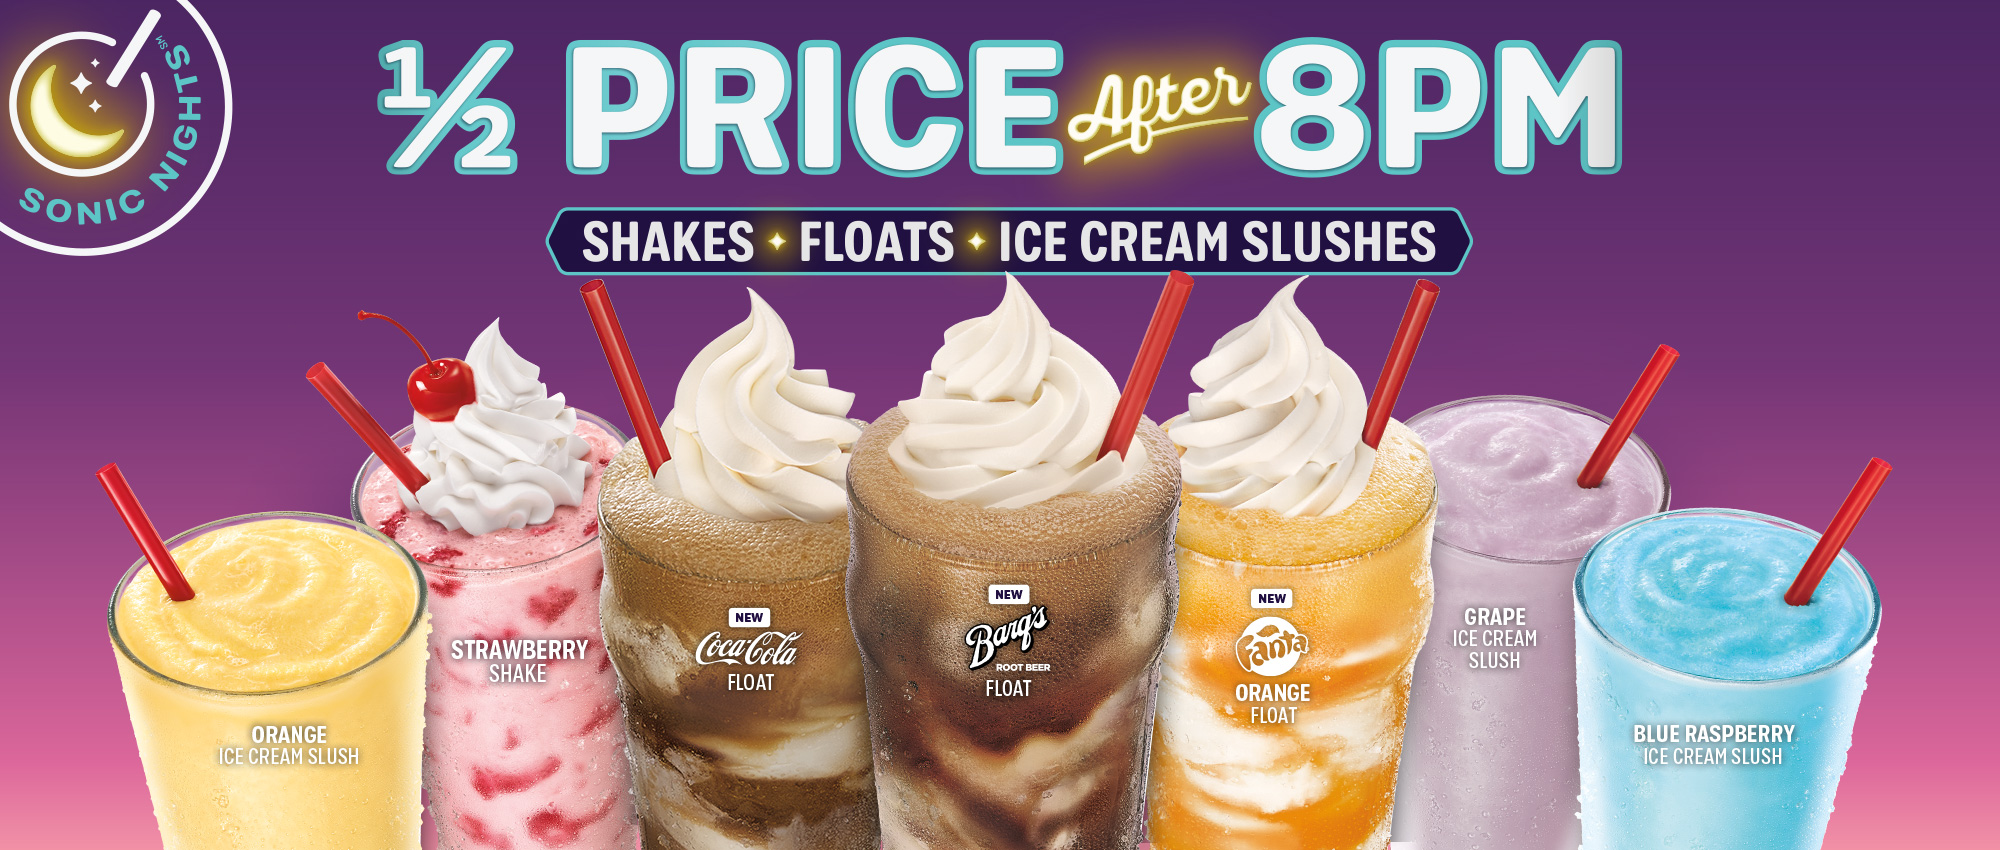 Half price Shakes, Floats and Ice Cream Slushes after 8pm!